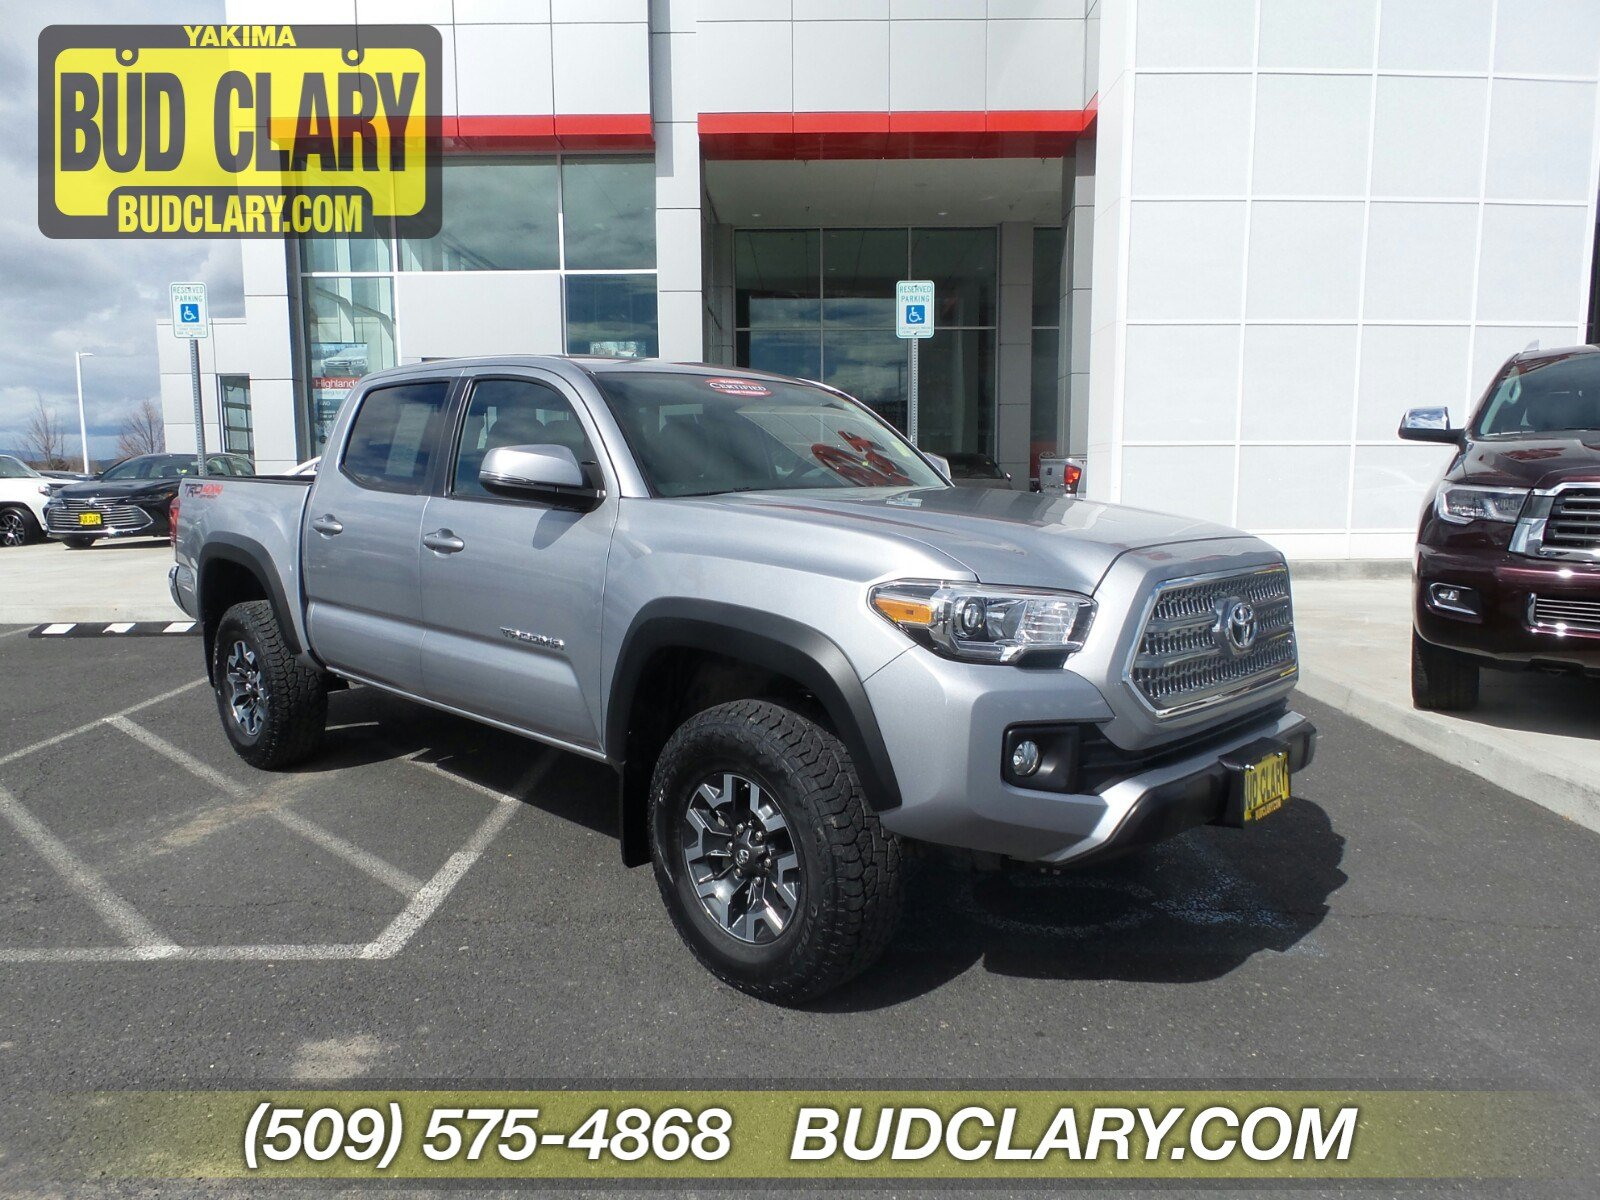 Pre Owned 2017 Toyota Tacoma Trd Off Road Double Cab 5 Bed V6 4x4 At